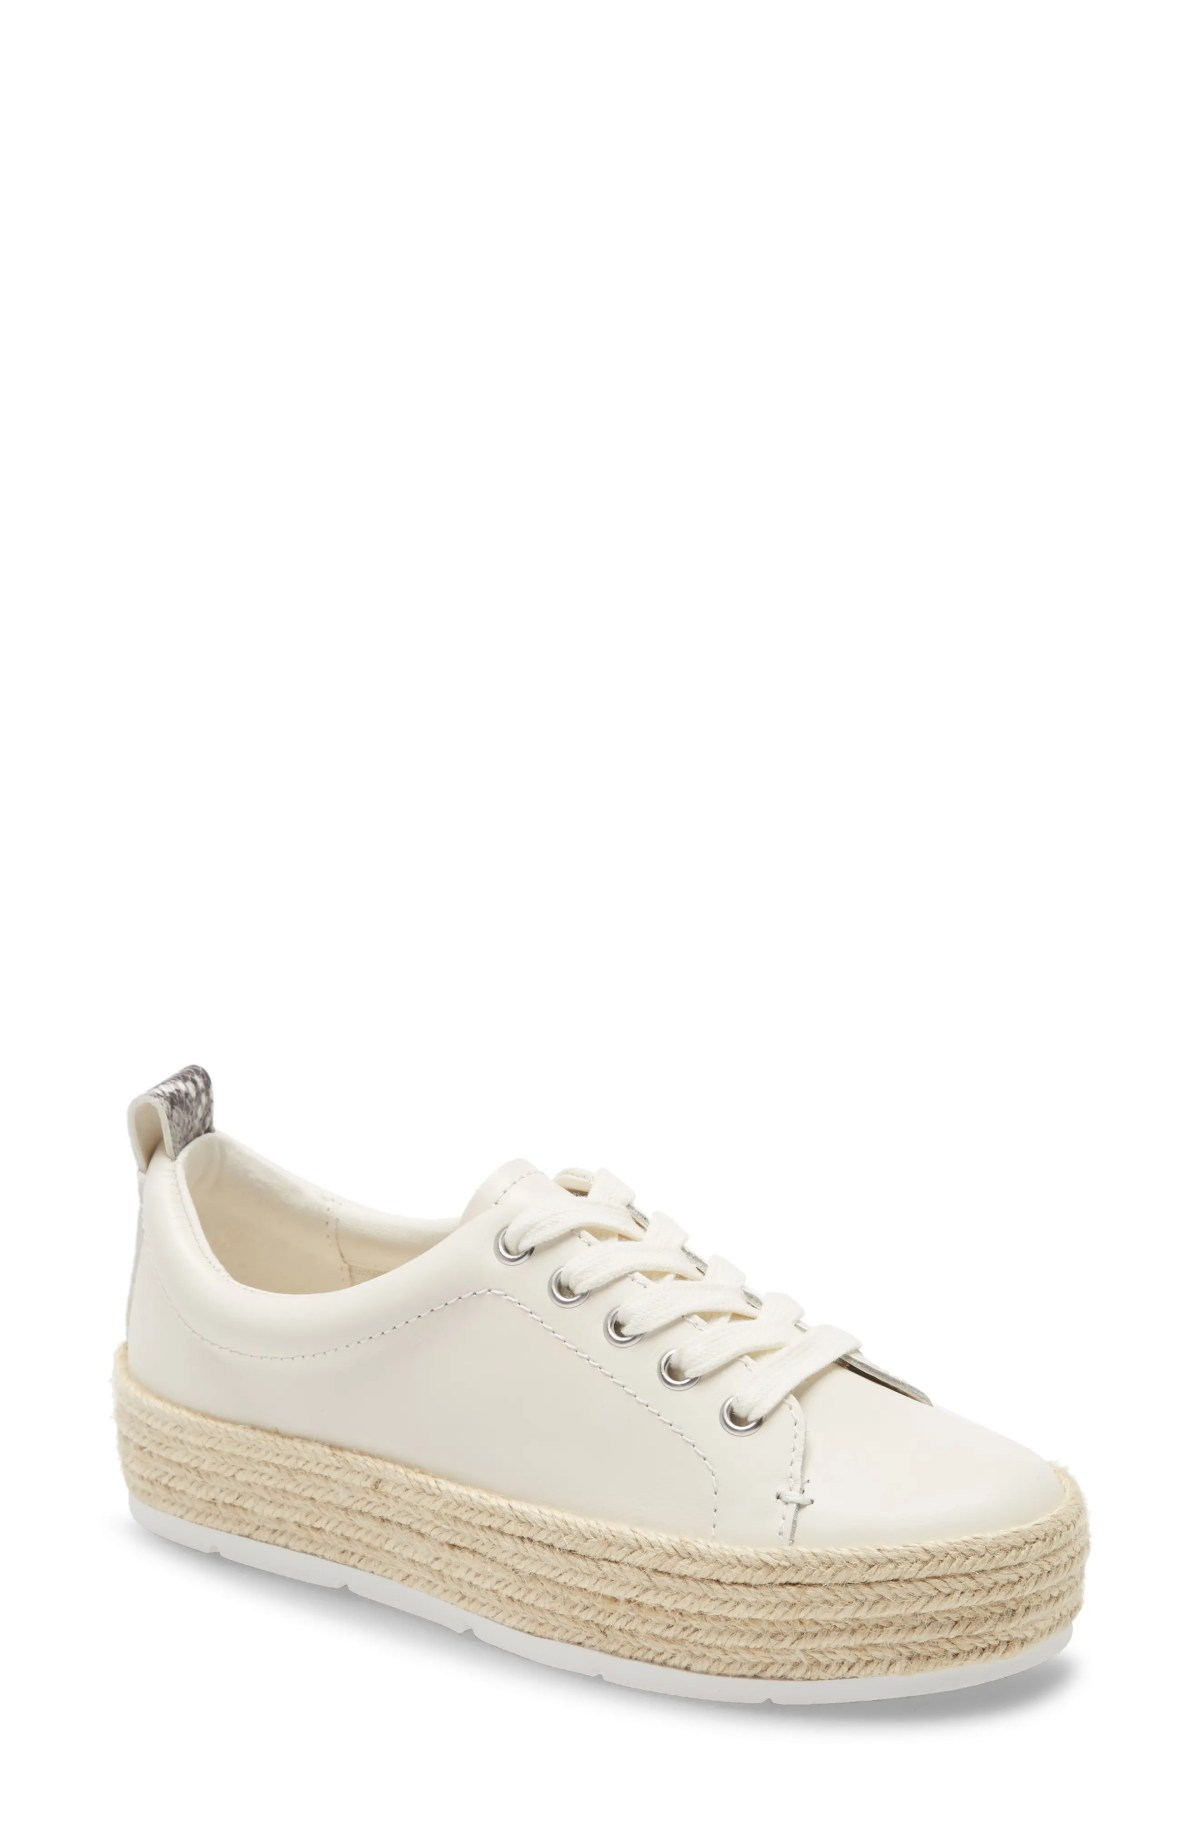 TREASURE & BOND Payge Platform Espadrille Sneaker, Main, color, OFF WHITE LEATHER